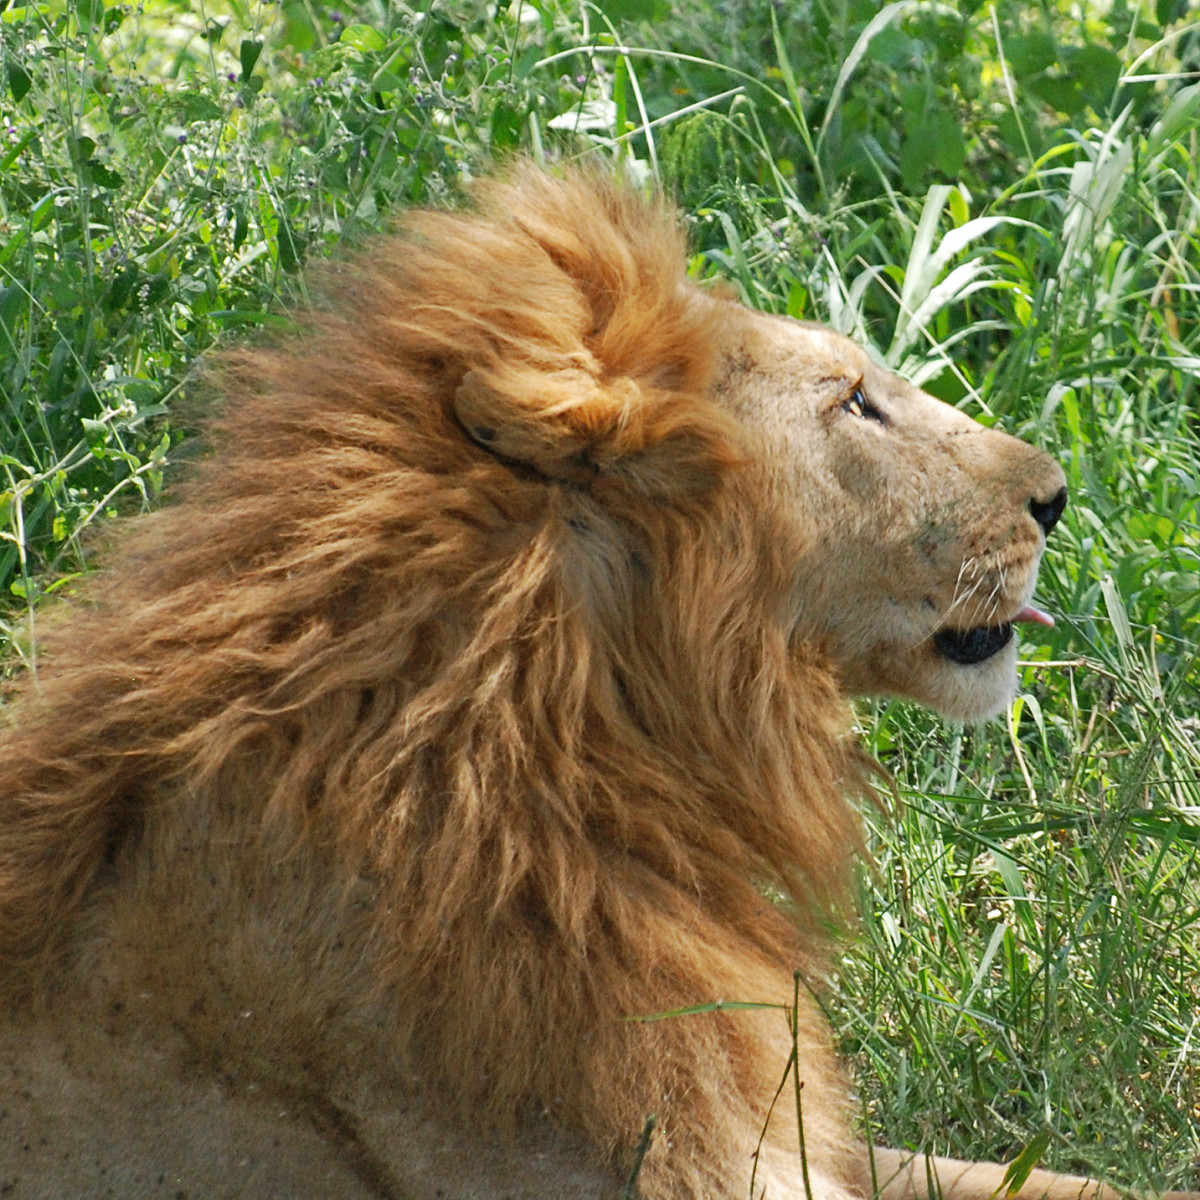 Lion in Serengeti region in Africa